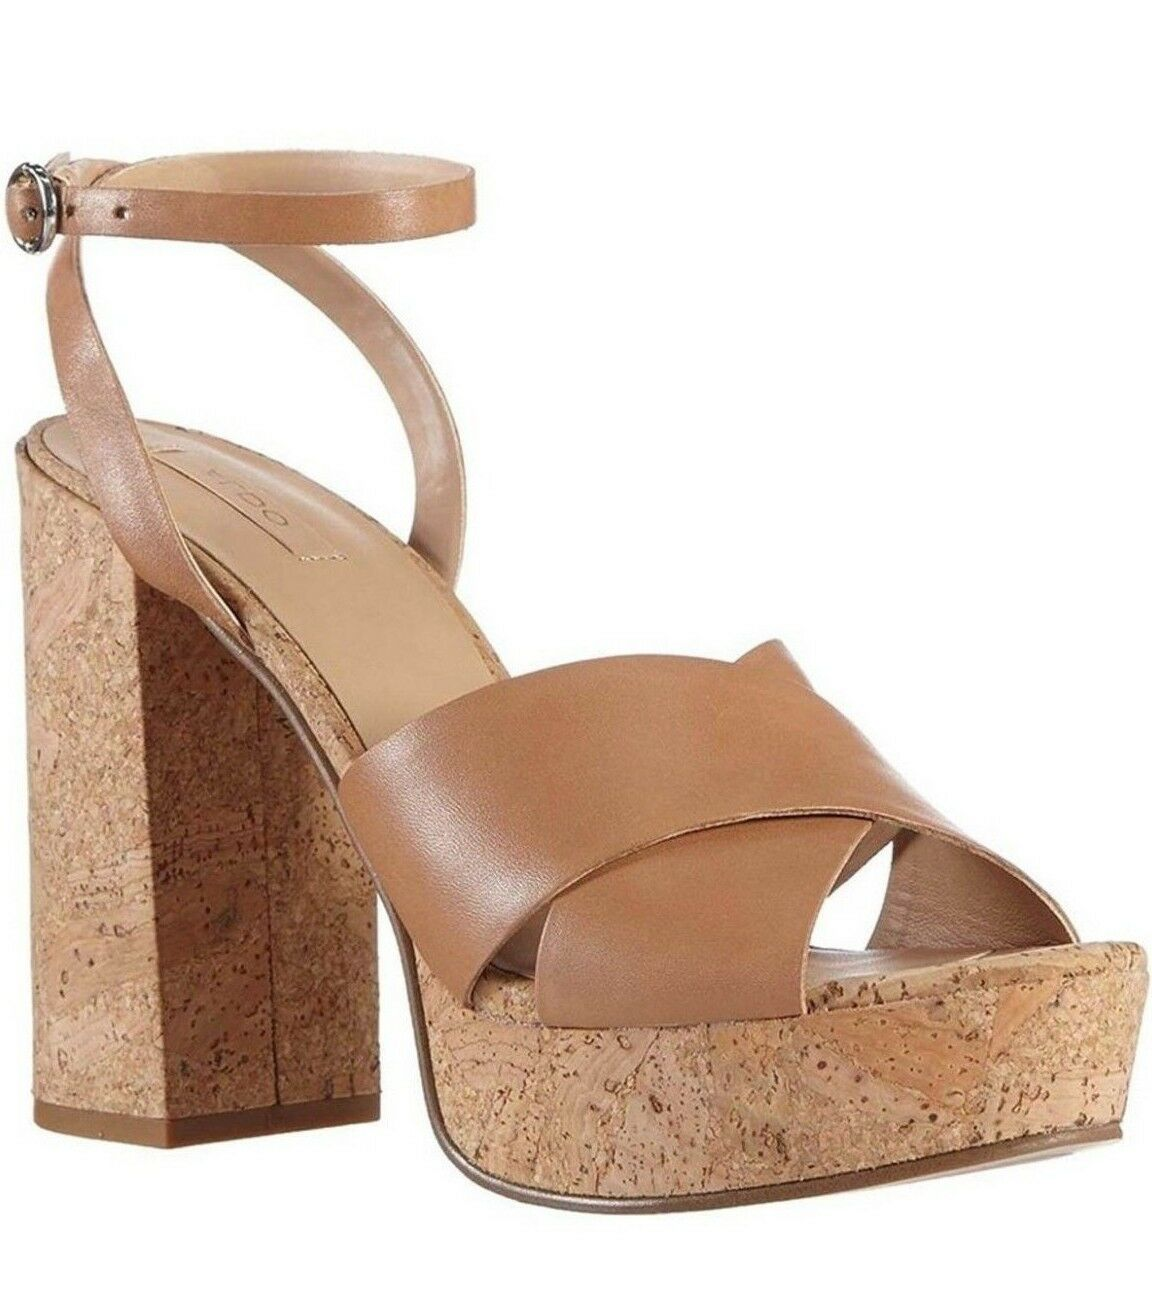 ALDO RIVALGO SIZE 7 40 TAN PINK CORAL CORK HEEL REAL LEATHER SANDALS Schuhe